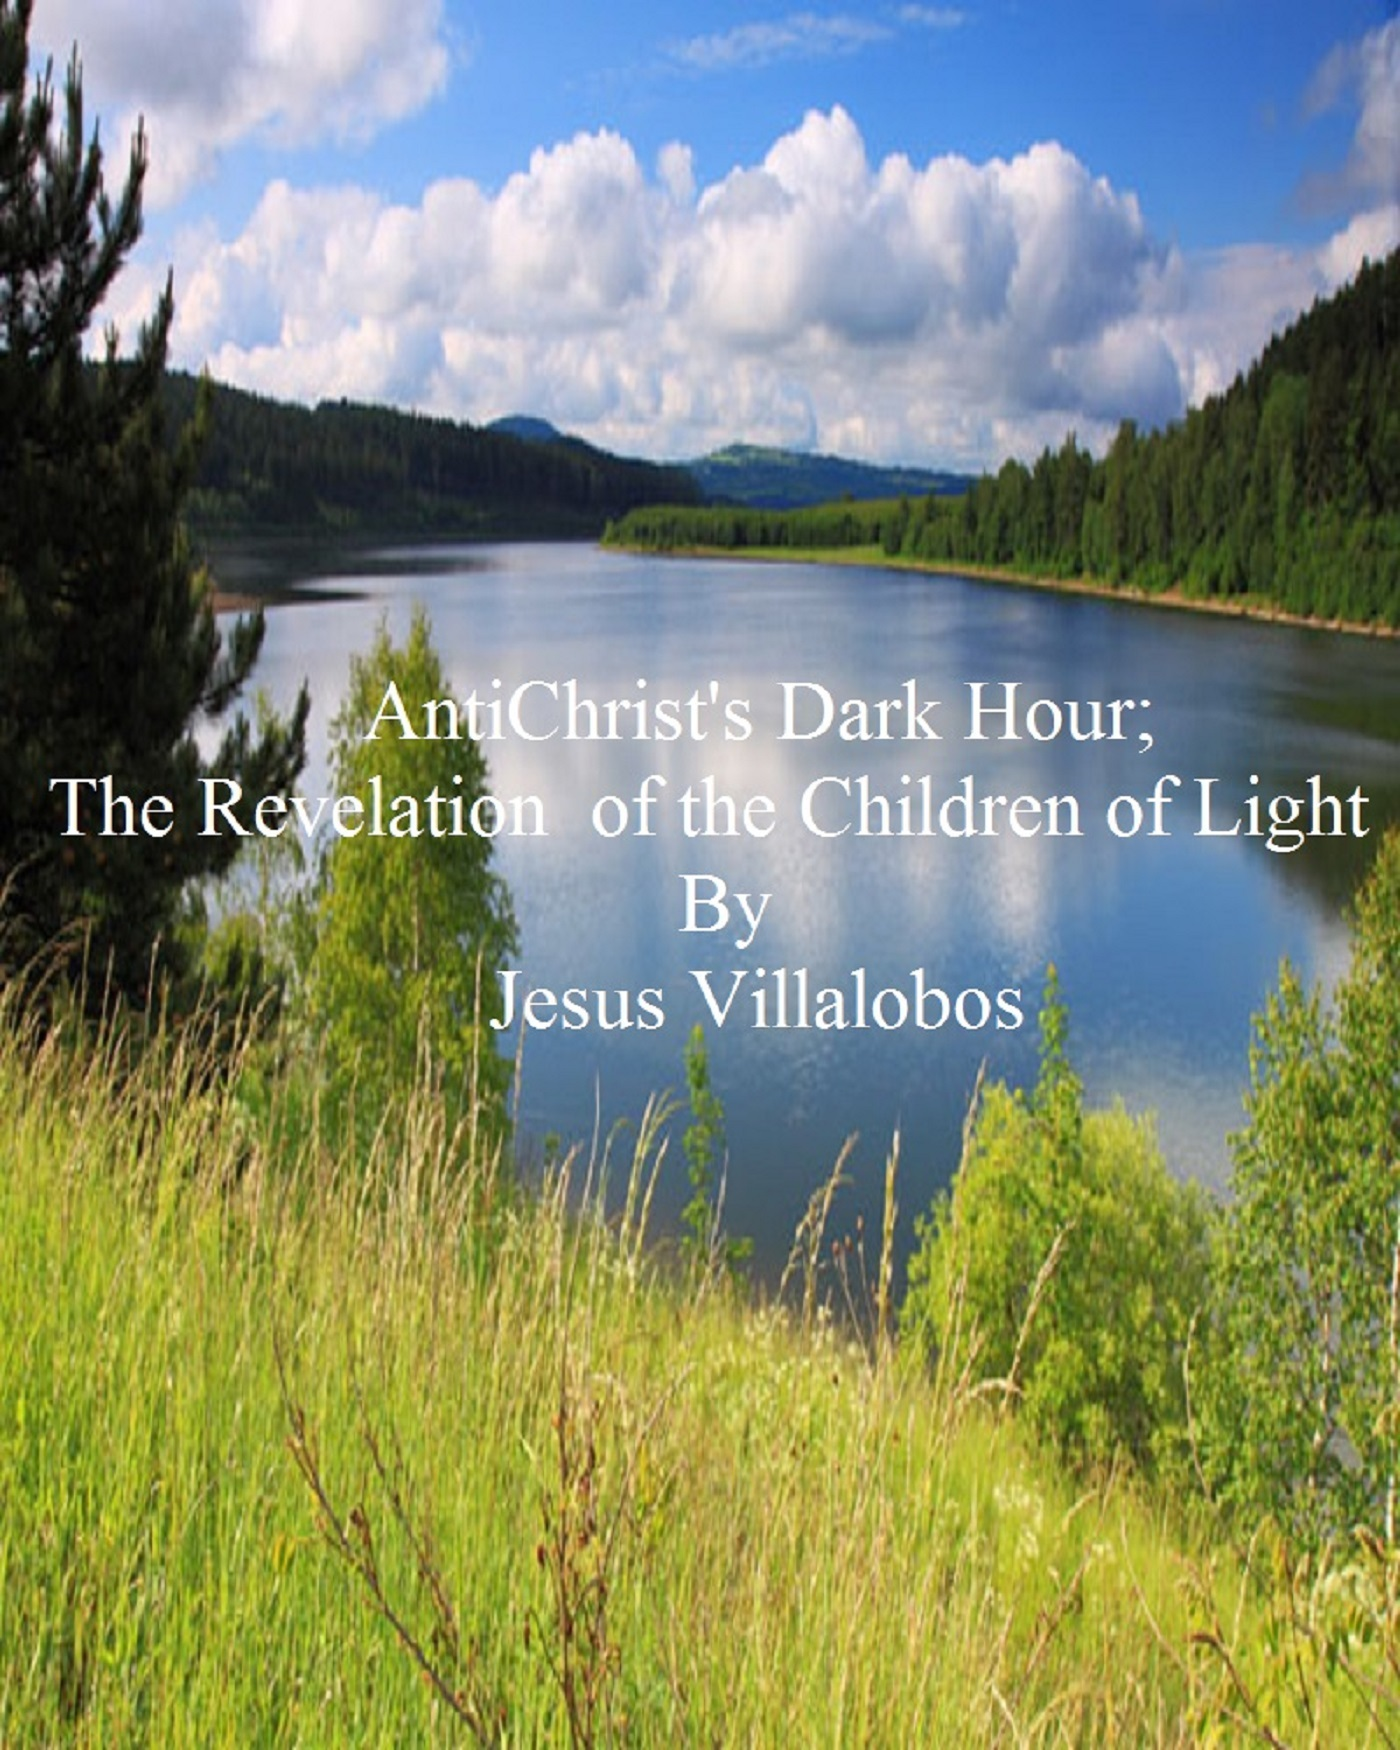 AntiChrist's Dark Hour; The Revelation of the Children of Light